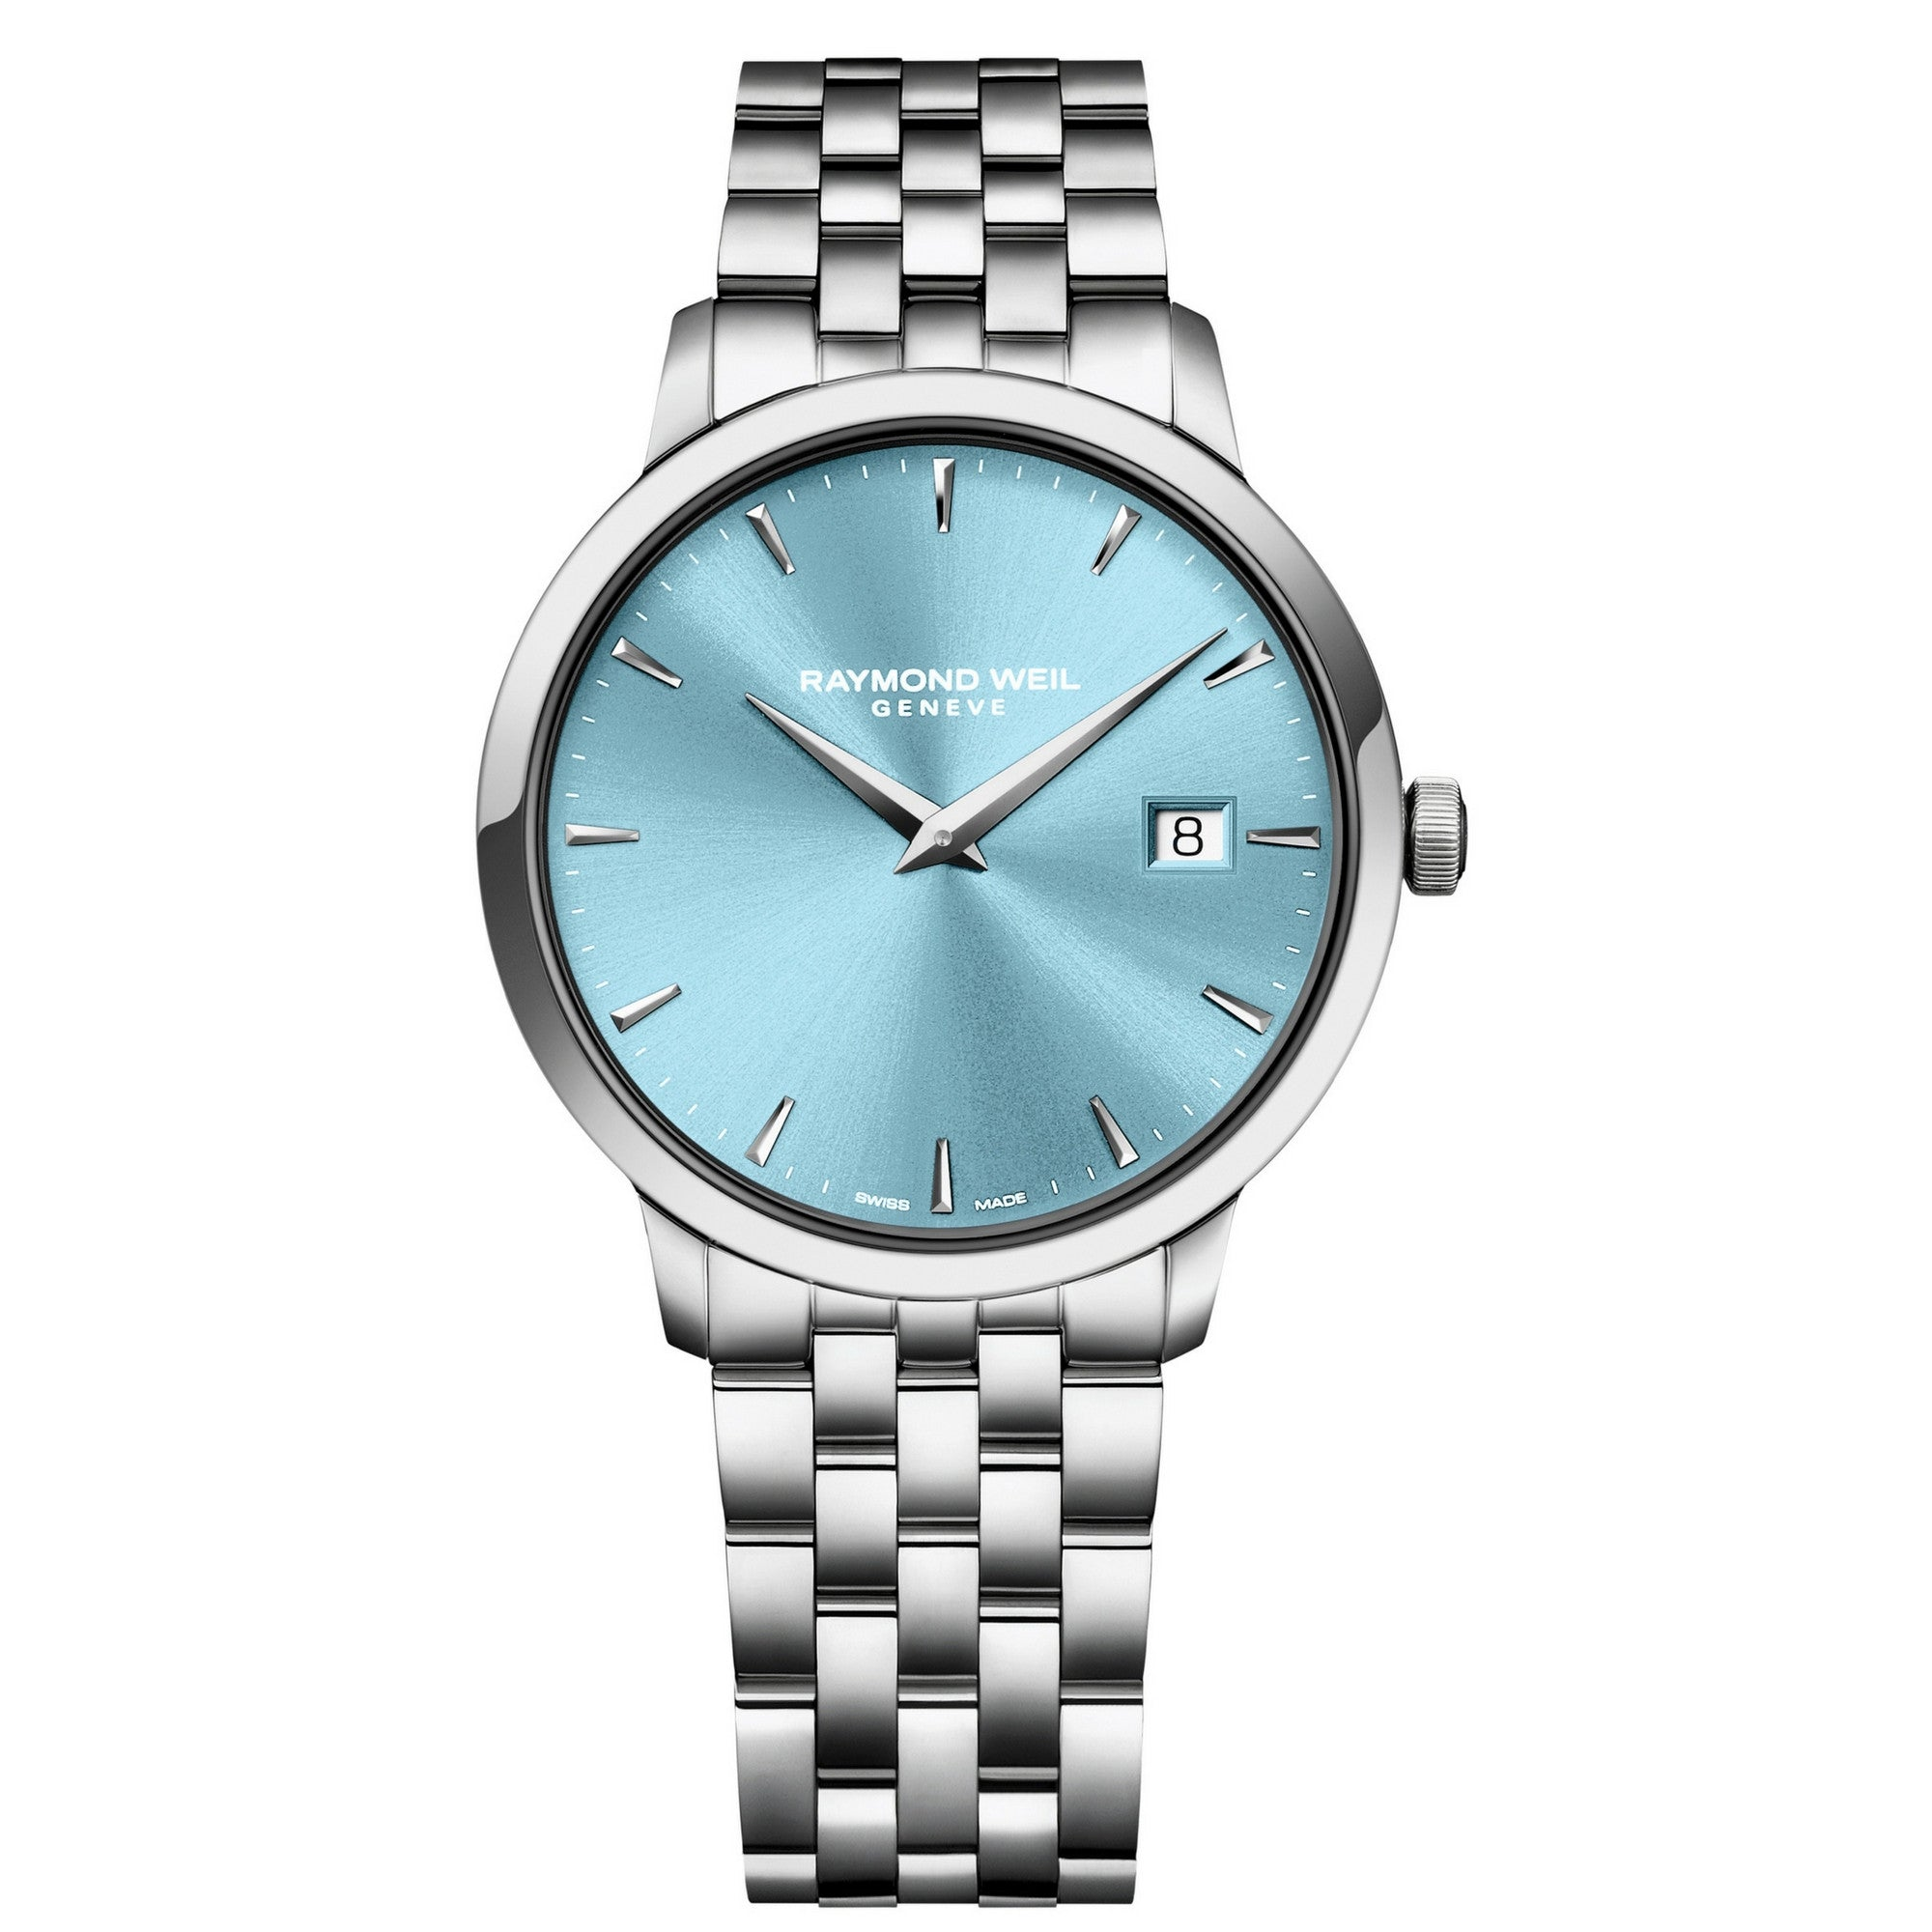 Blue face  Raymond Well Toccata Little Switzerland exclusive watches